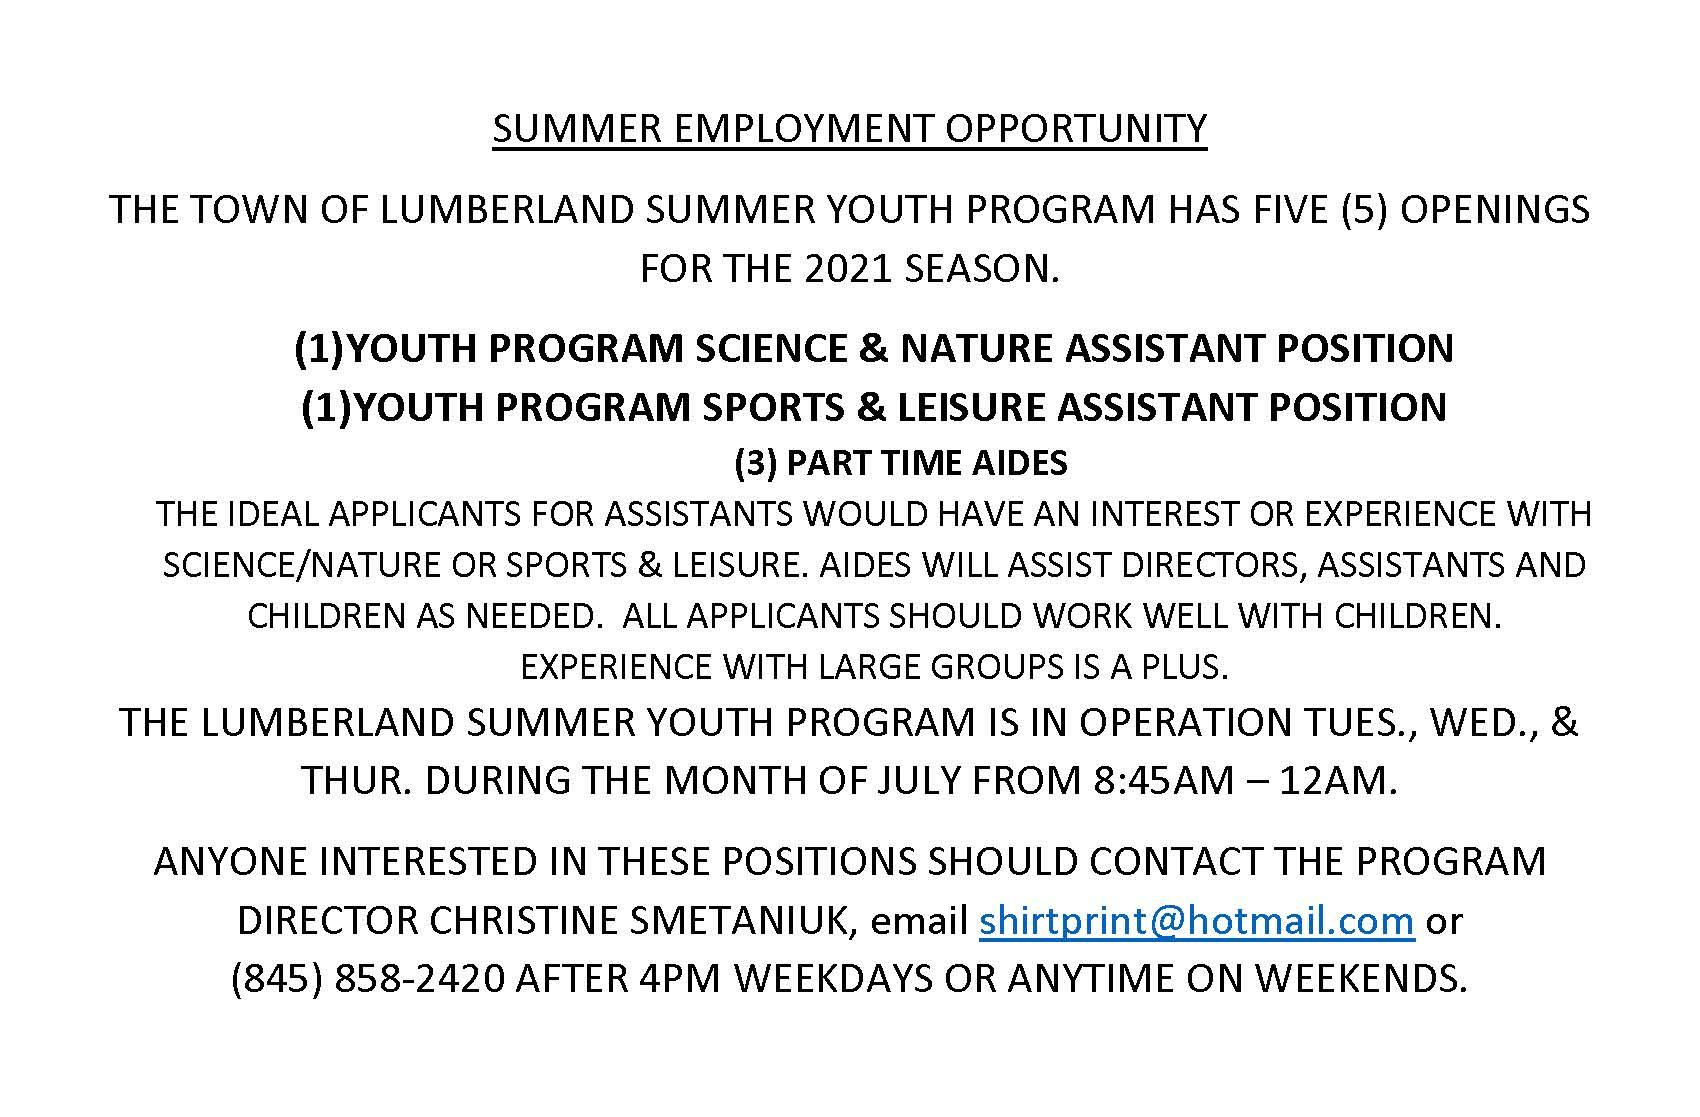 SUMMER EMPLOYMENT OPPORTUNITY (1) - Copy